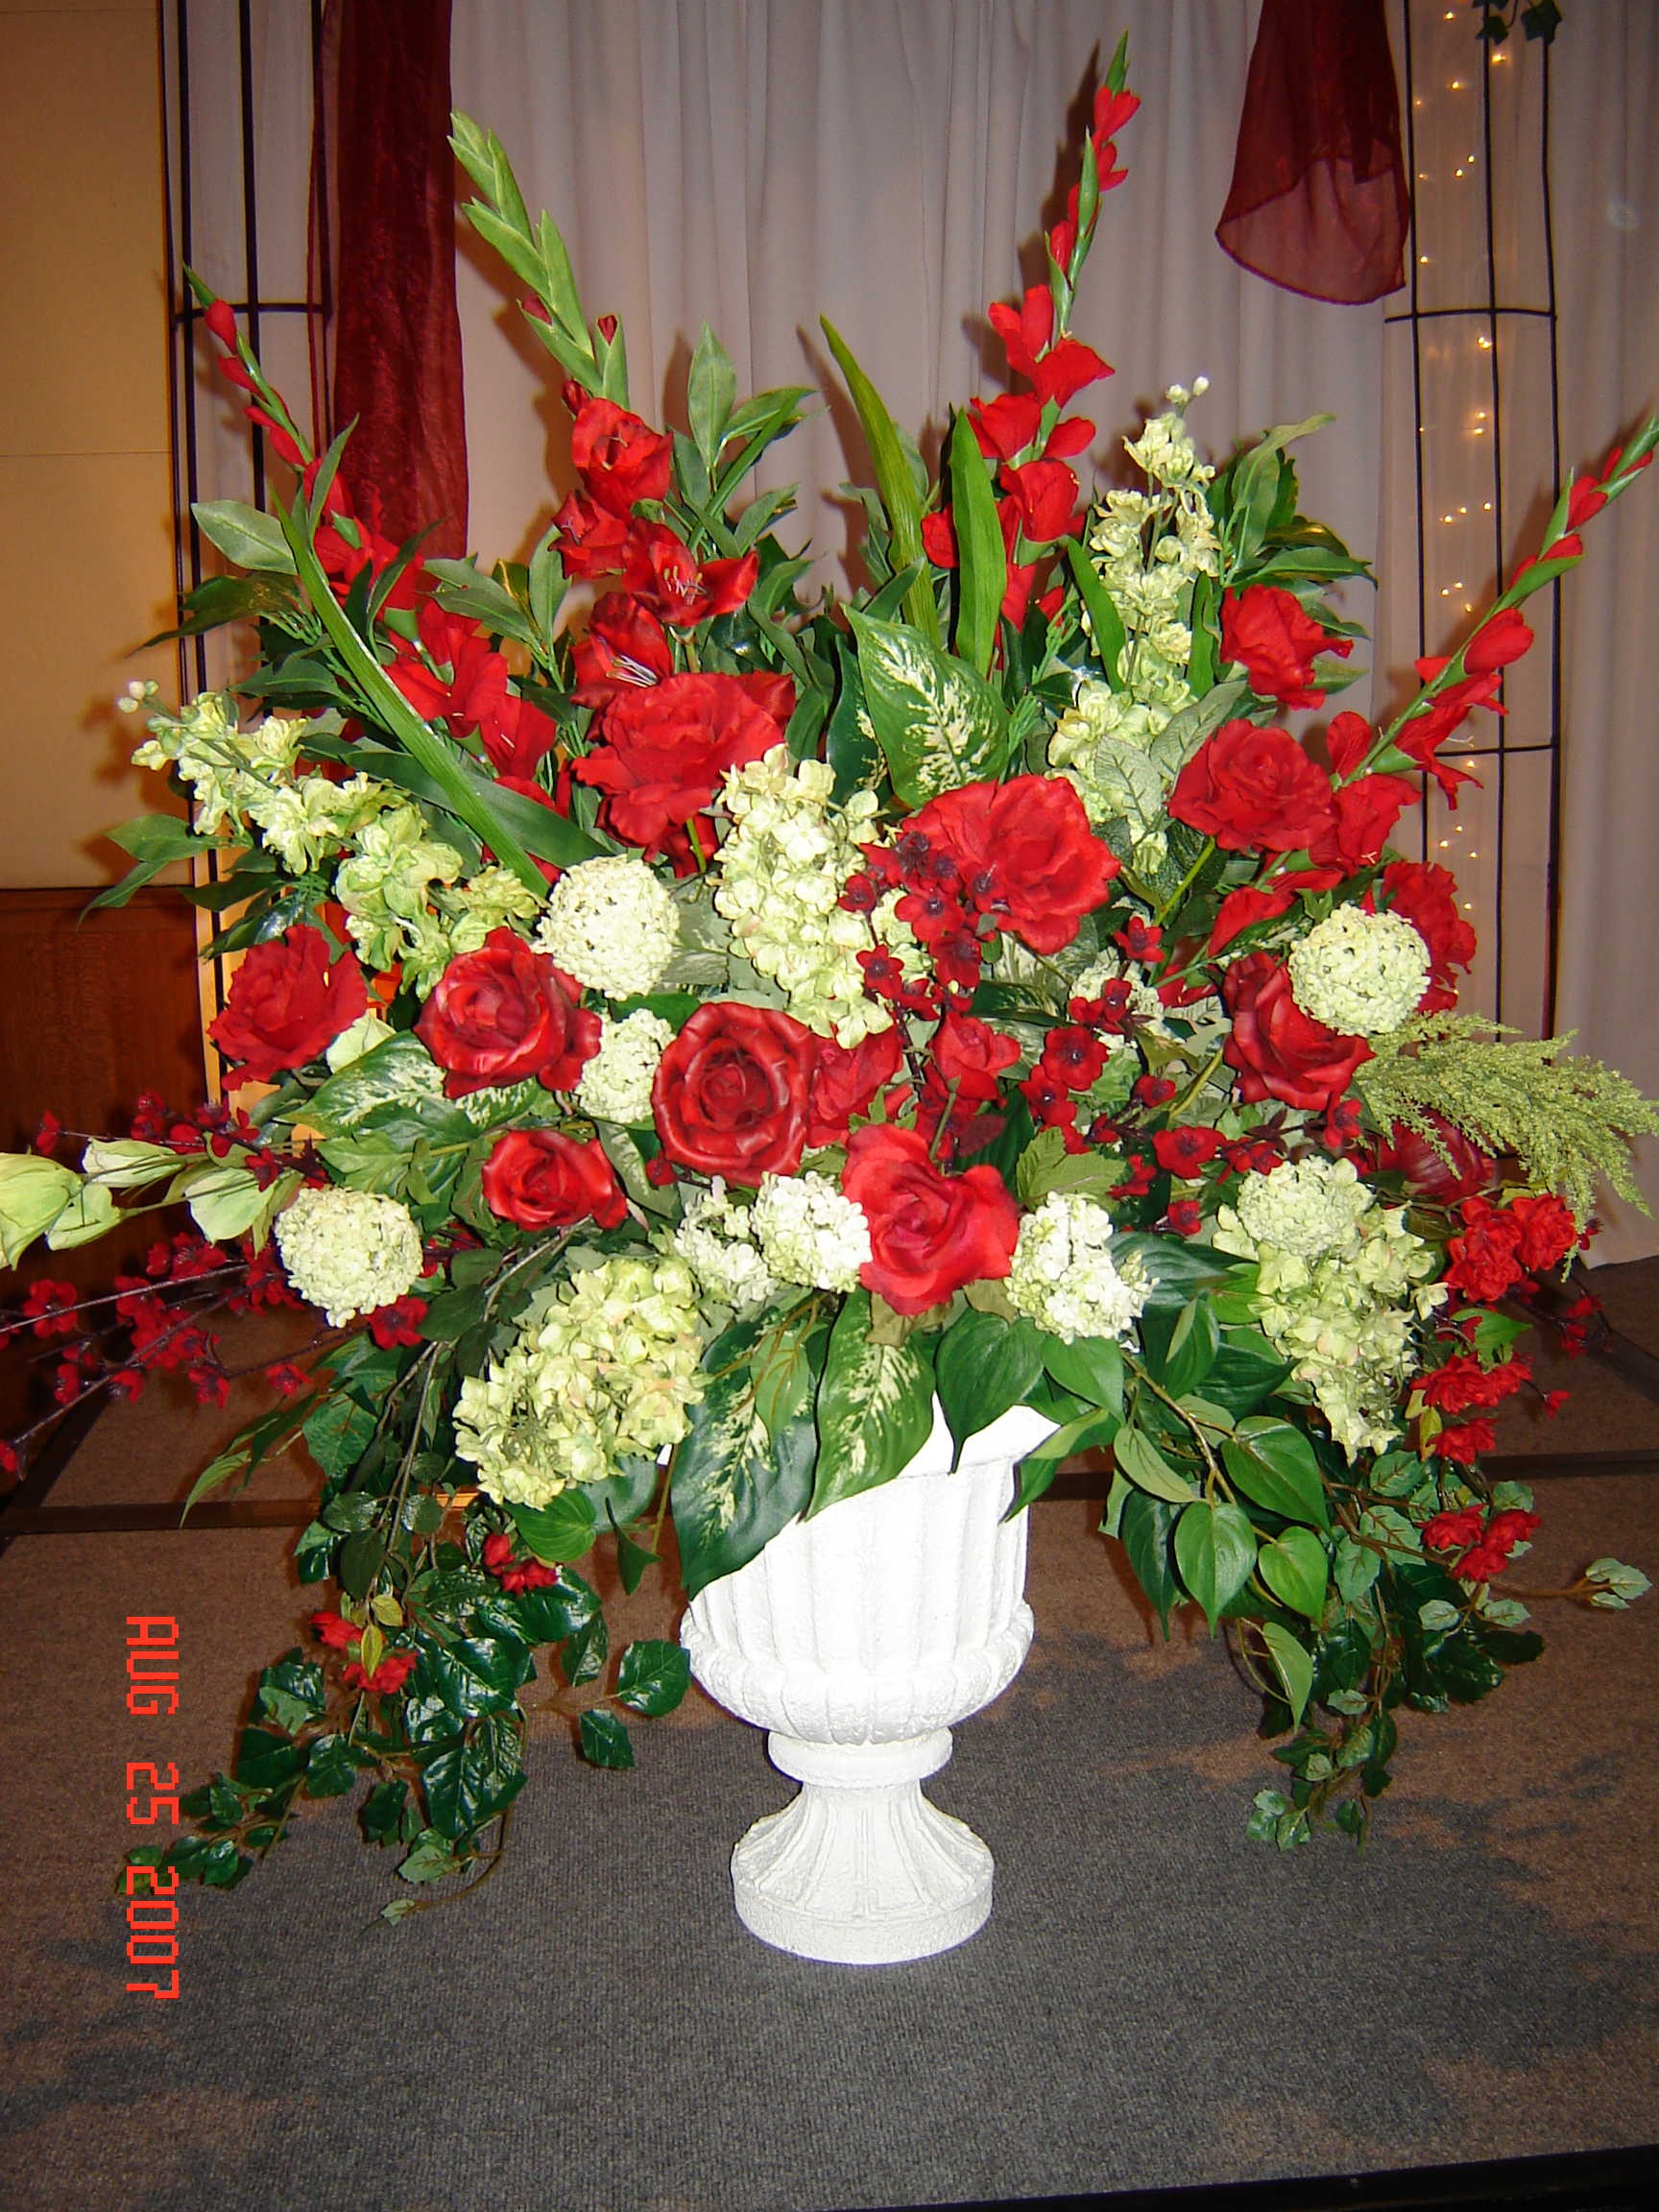 Simply elegant weddings flower arrangements mightylinksfo Image collections